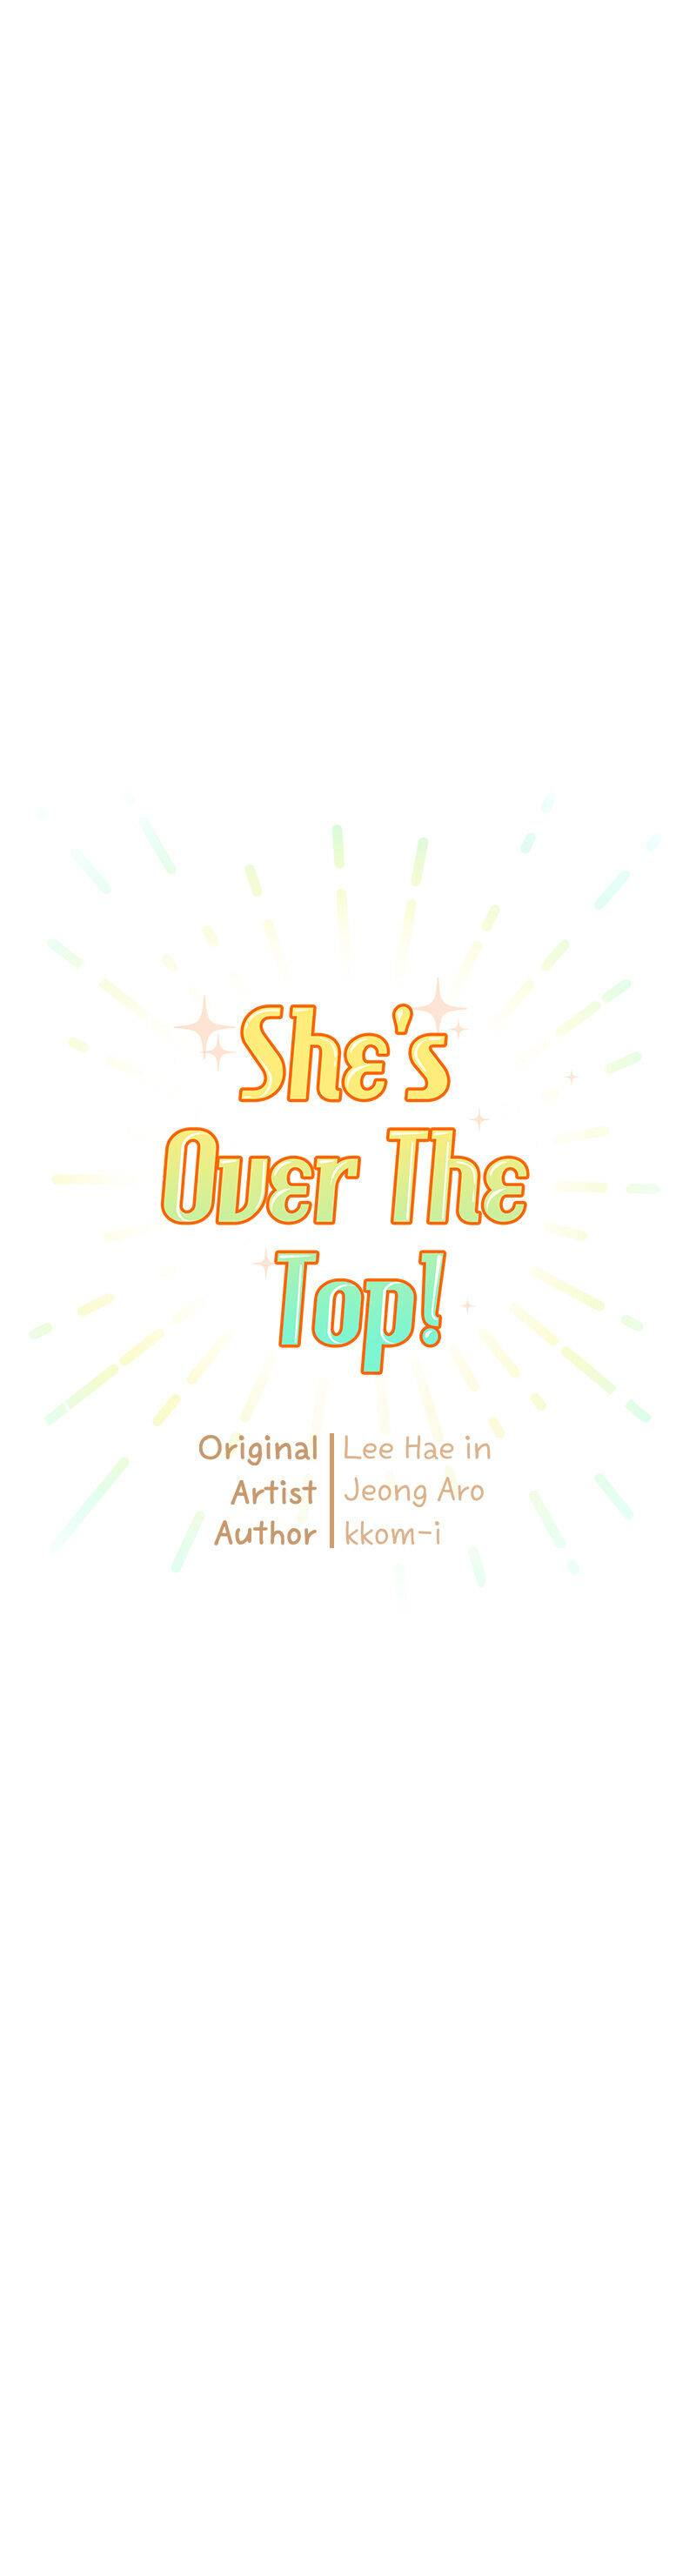 She'S Over The Top! - chapter 38 - #1